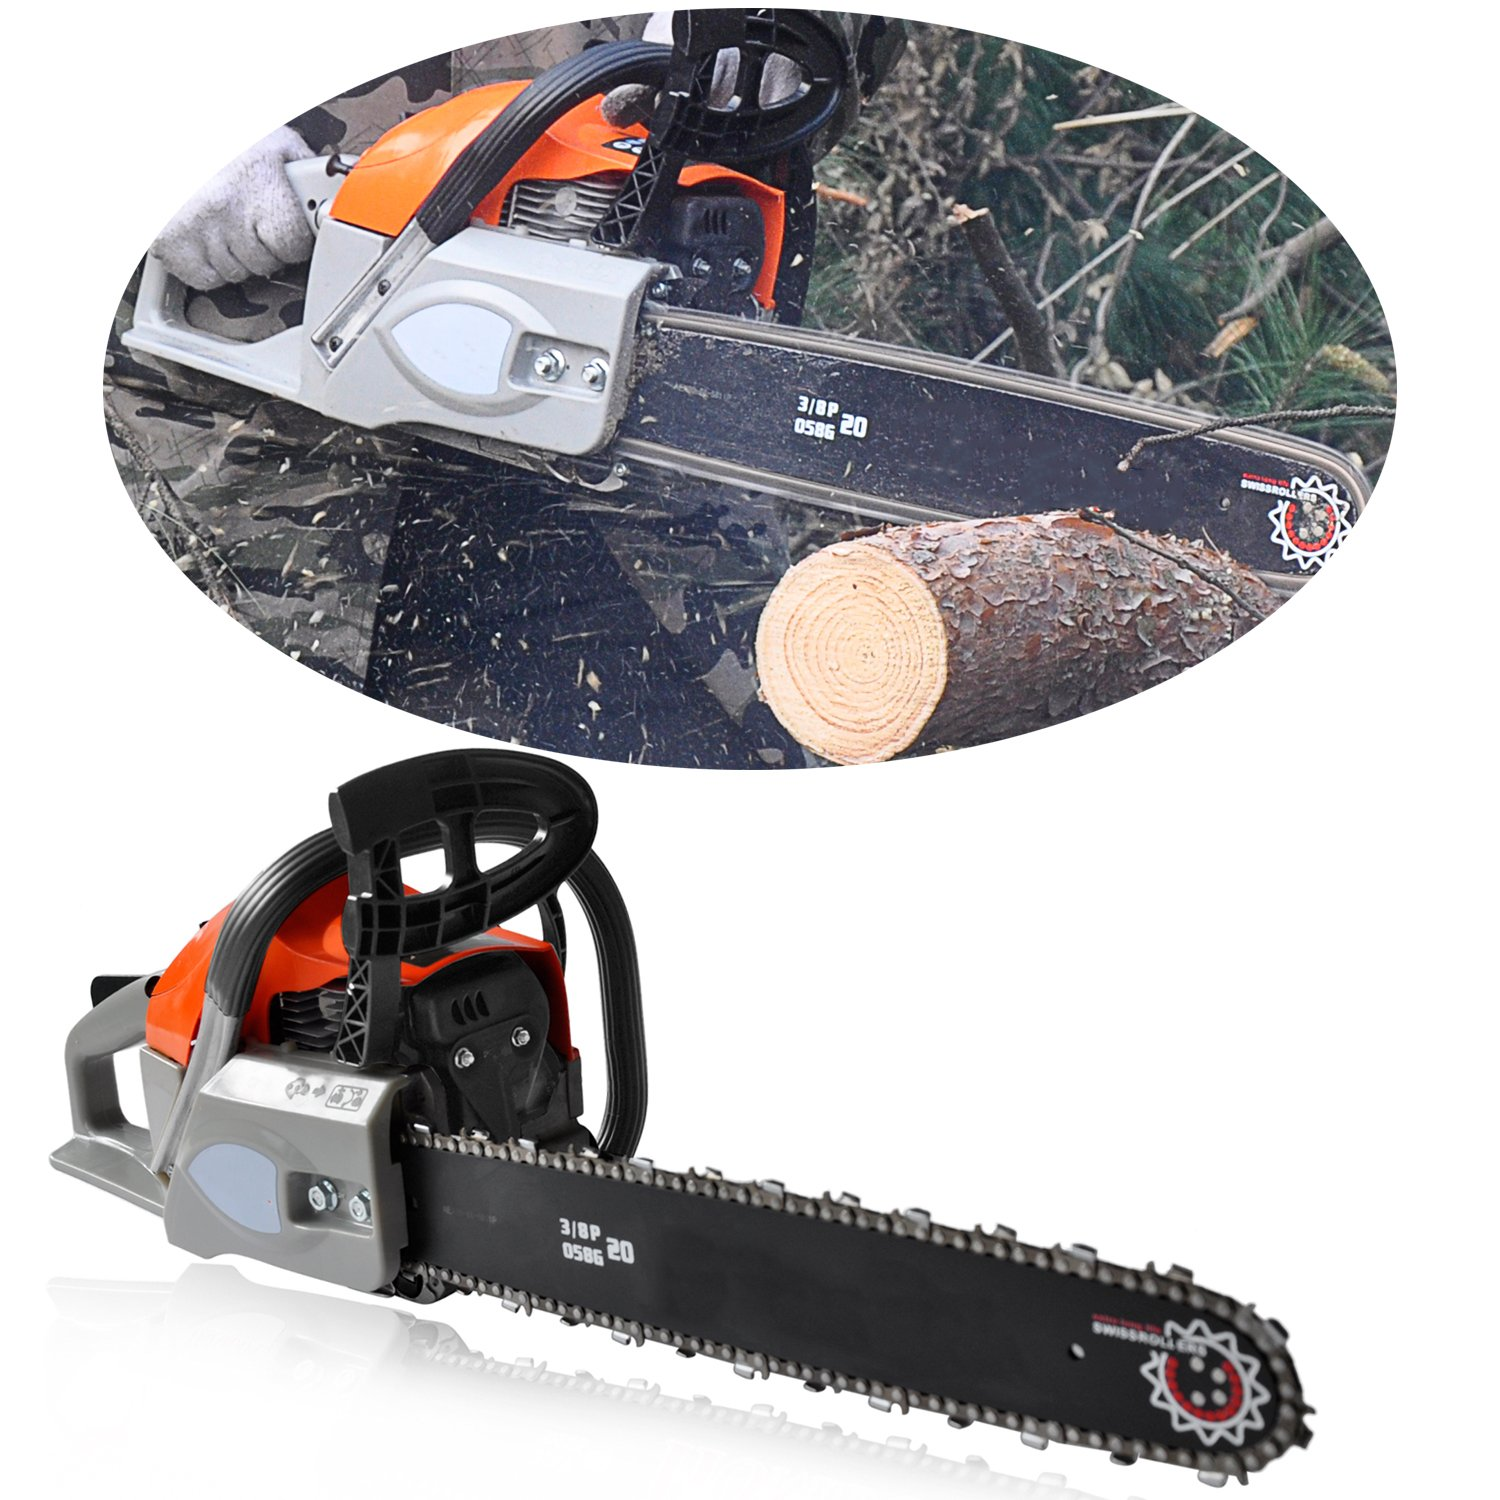 ncient ChainSaw 20'' 62CC Gas Powered Chain Saw 2 Stroke Handed Petrol Chainsaw with Smart Start Super Air Filter System and Automatic Oiling and Tool Kit [US STOCK] (62CC)